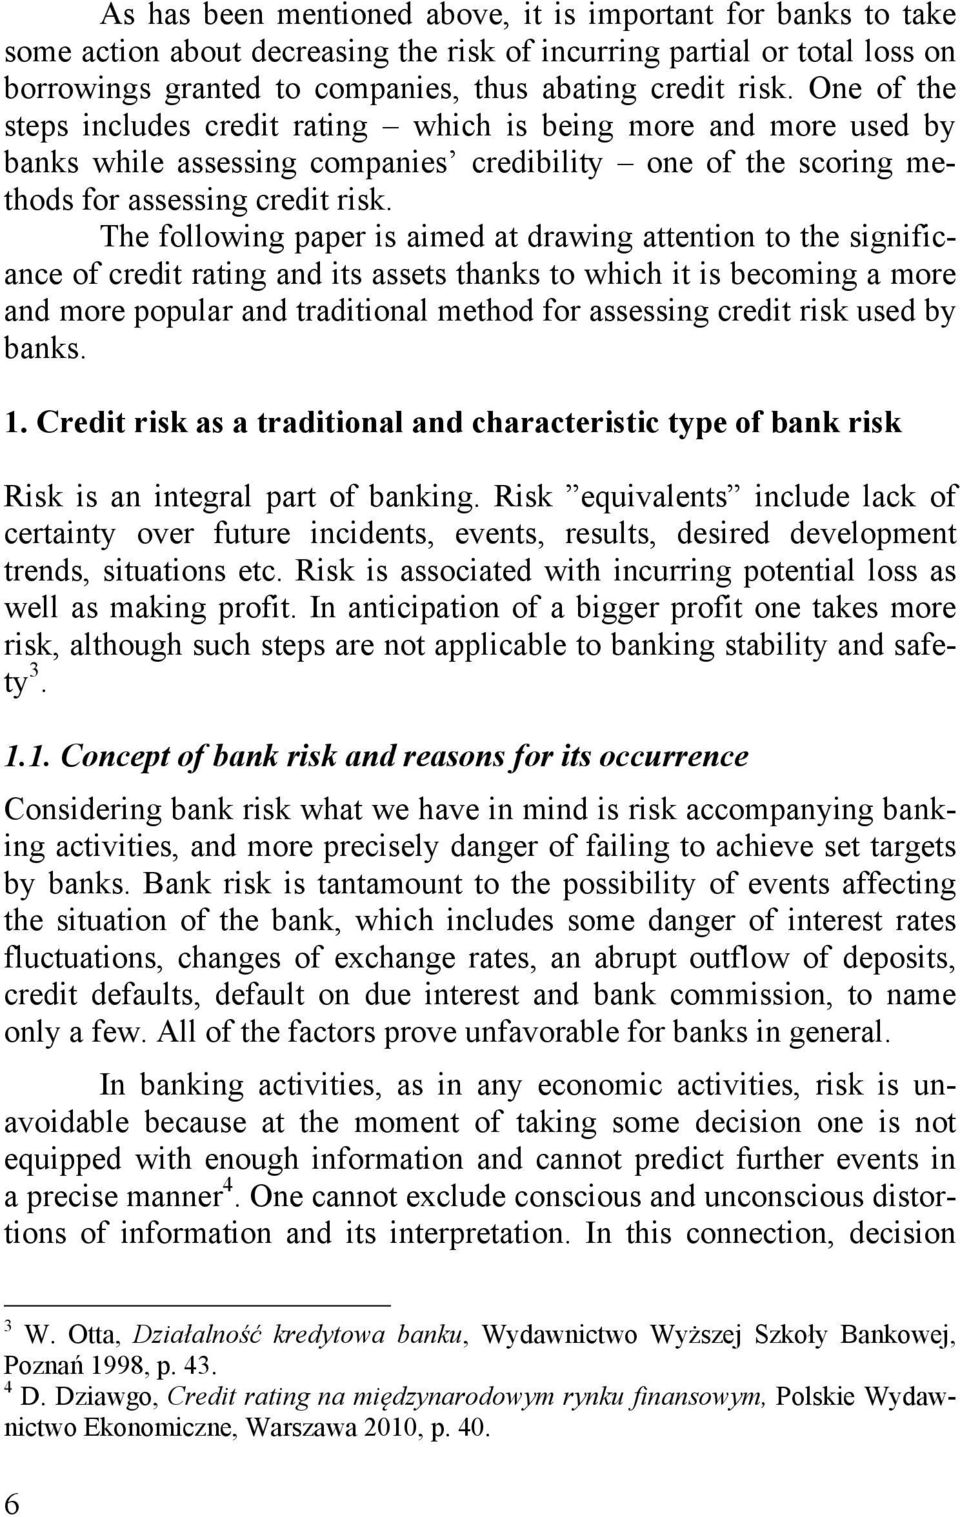 The following paper is aimed at drawing attention to the significance of credit rating and its assets thanks to which it is becoming a more and more popular and traditional method for assessing